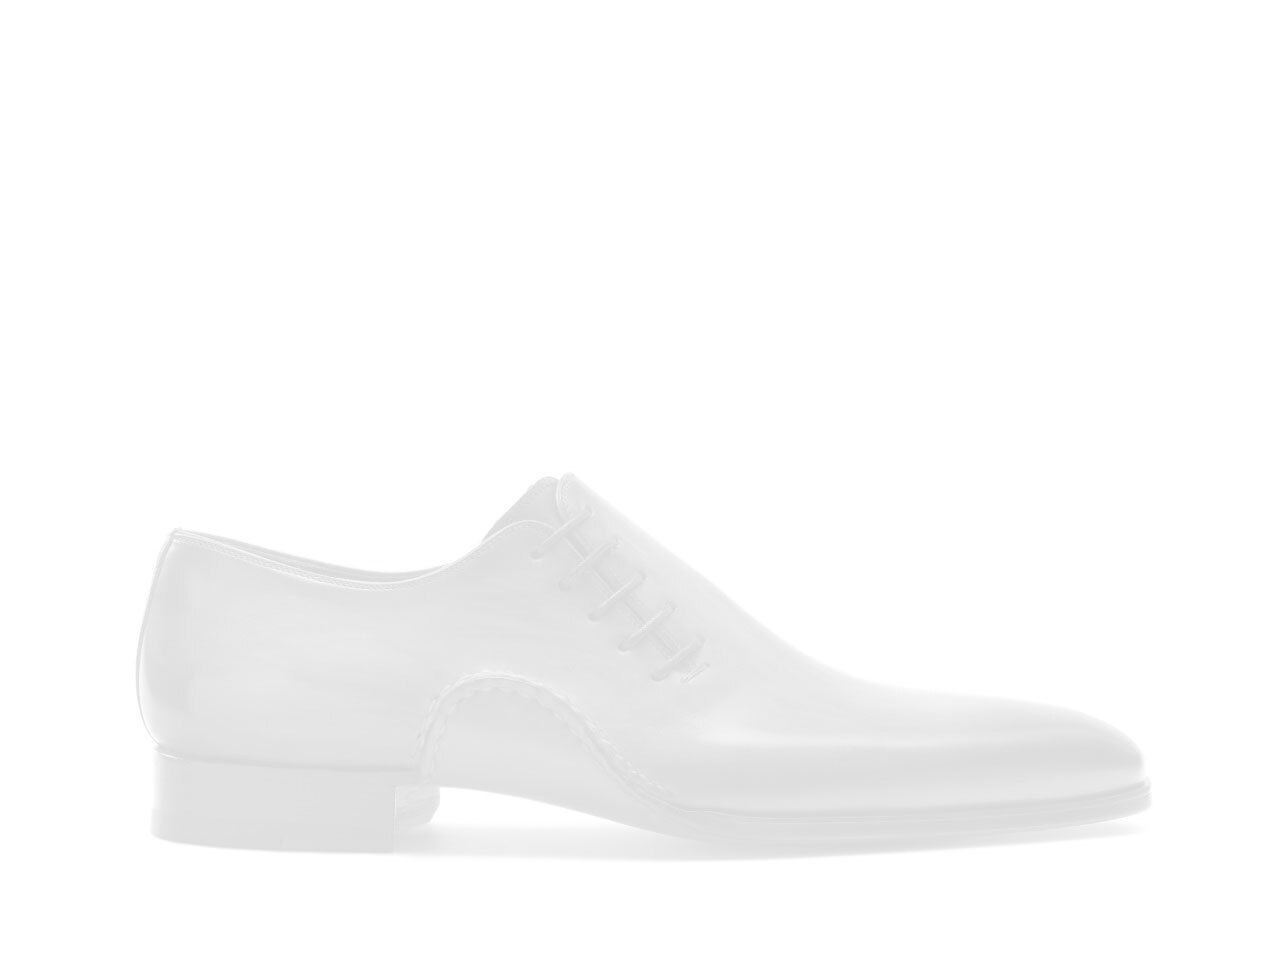 Sole of the Magnanni Siero White Men's Sneakers